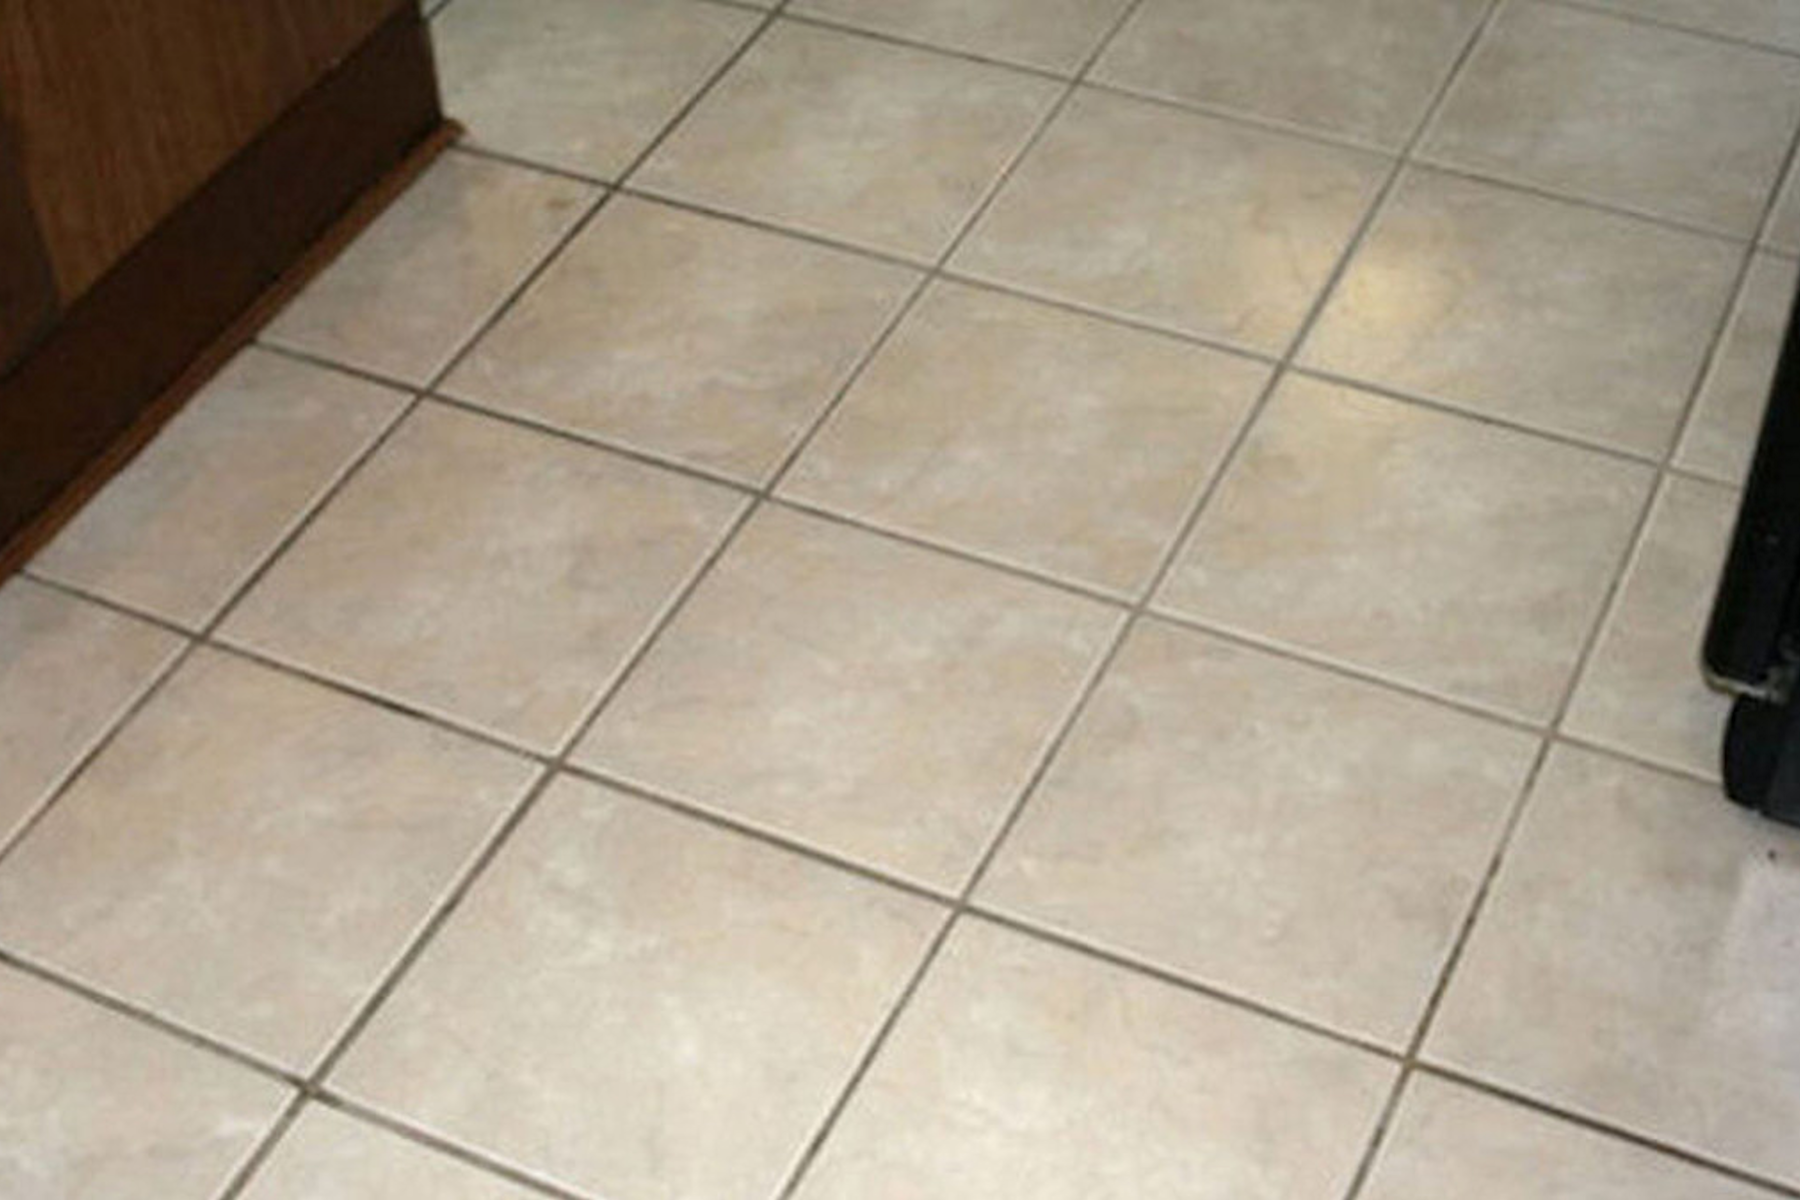 Kitchen tiles with bad stains before colour seal is applied